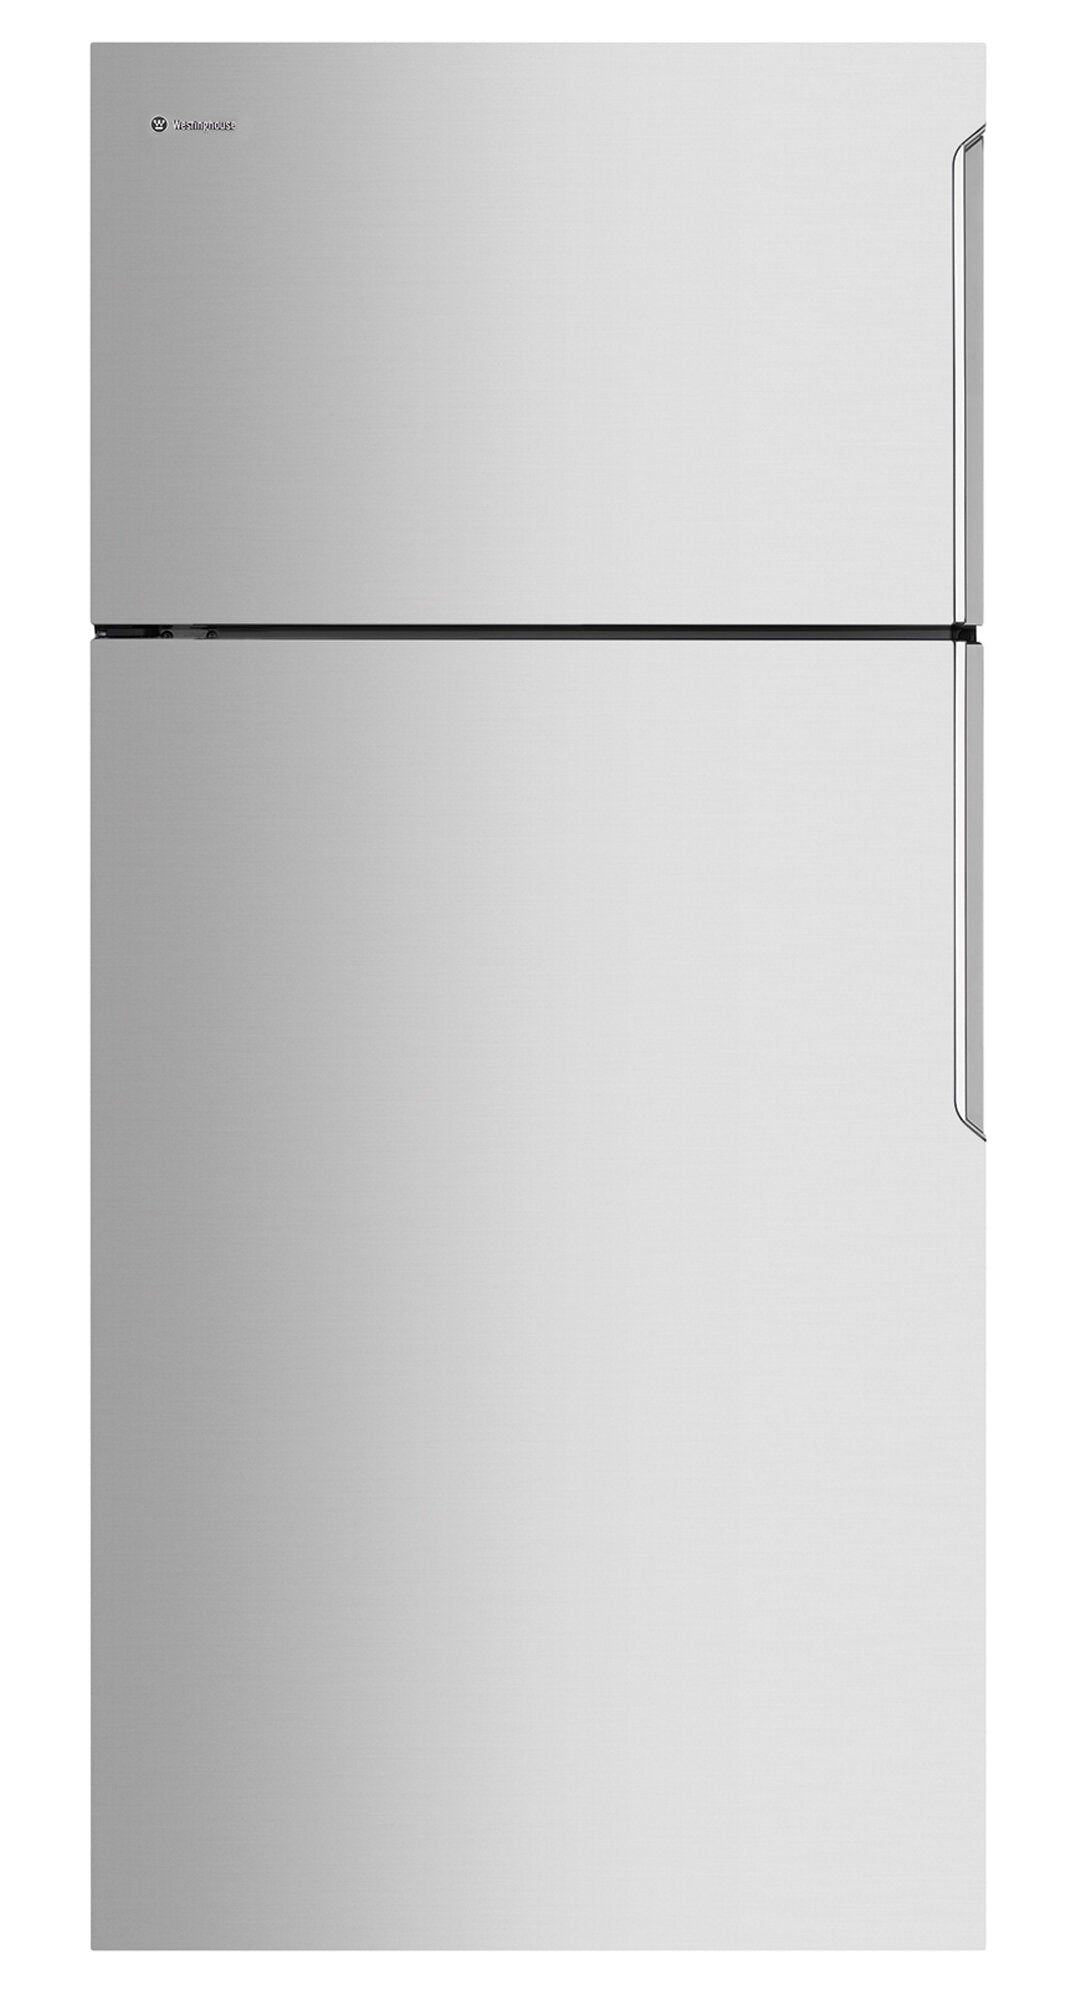 Westinghouse 536L Top Mount Fridge - Brisbane Home Appliances